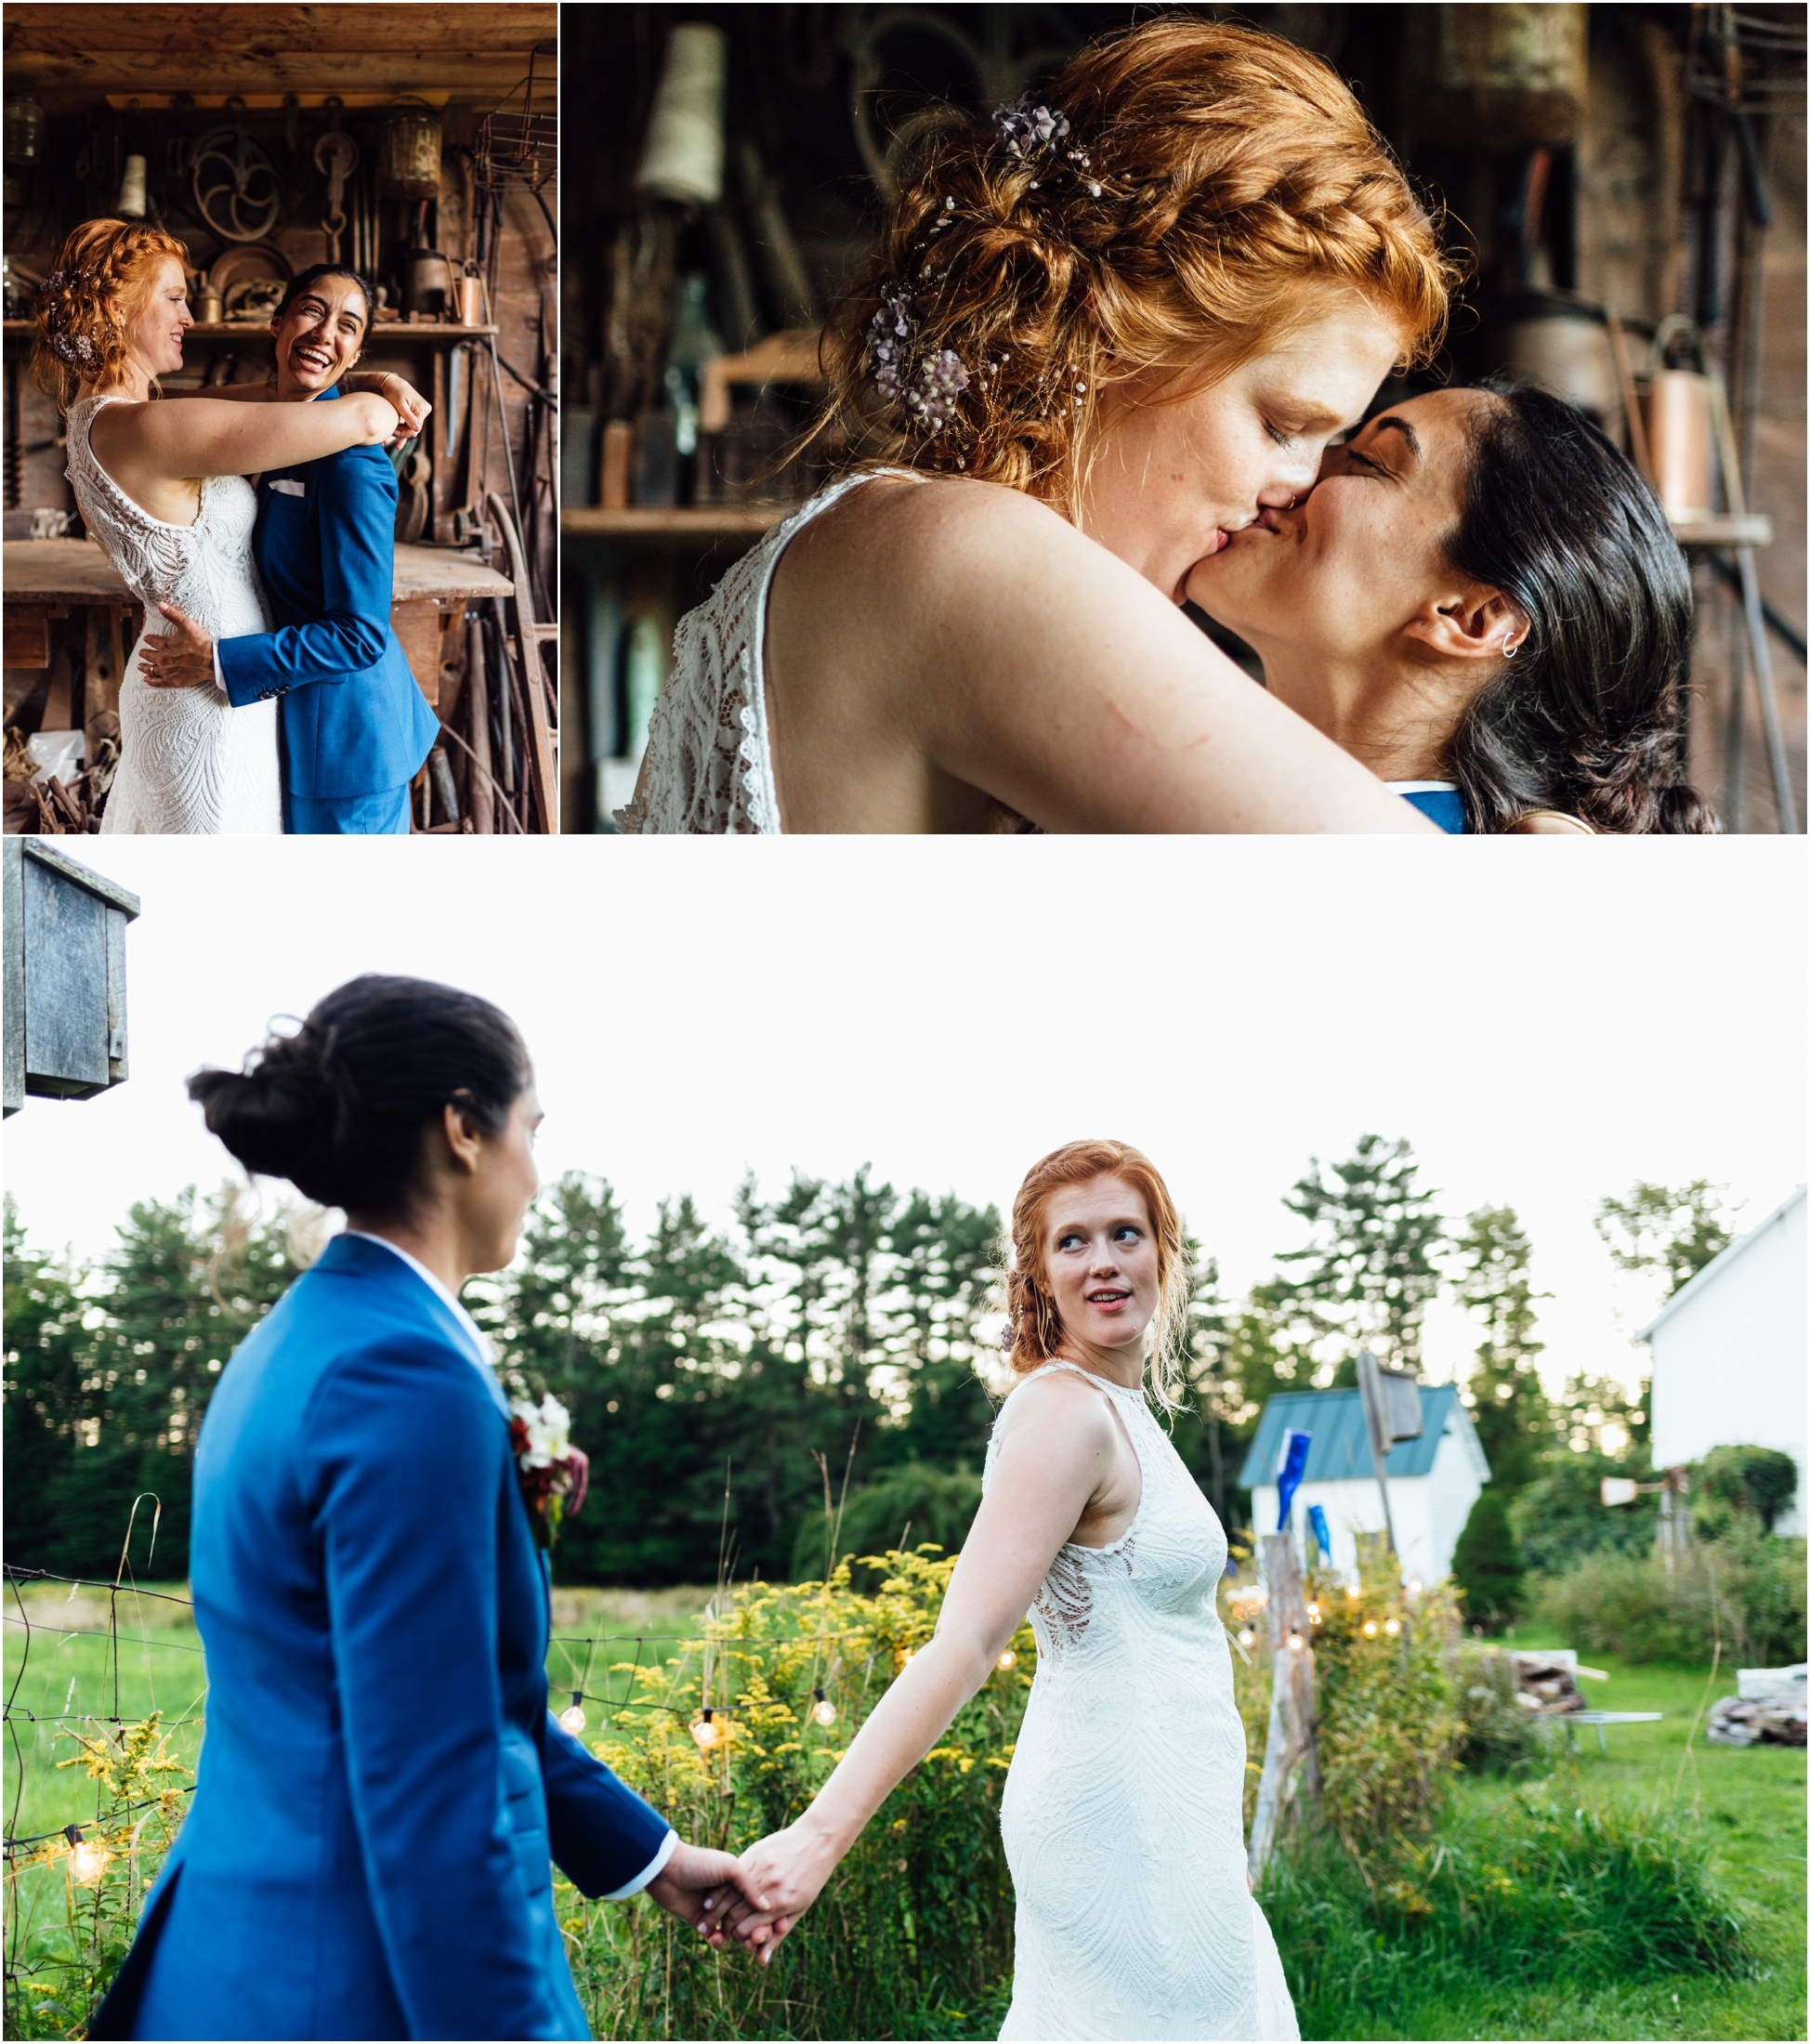 Kate_and_Michele_New_Hampshire_wedding_the_photo_farm_0631.jpg